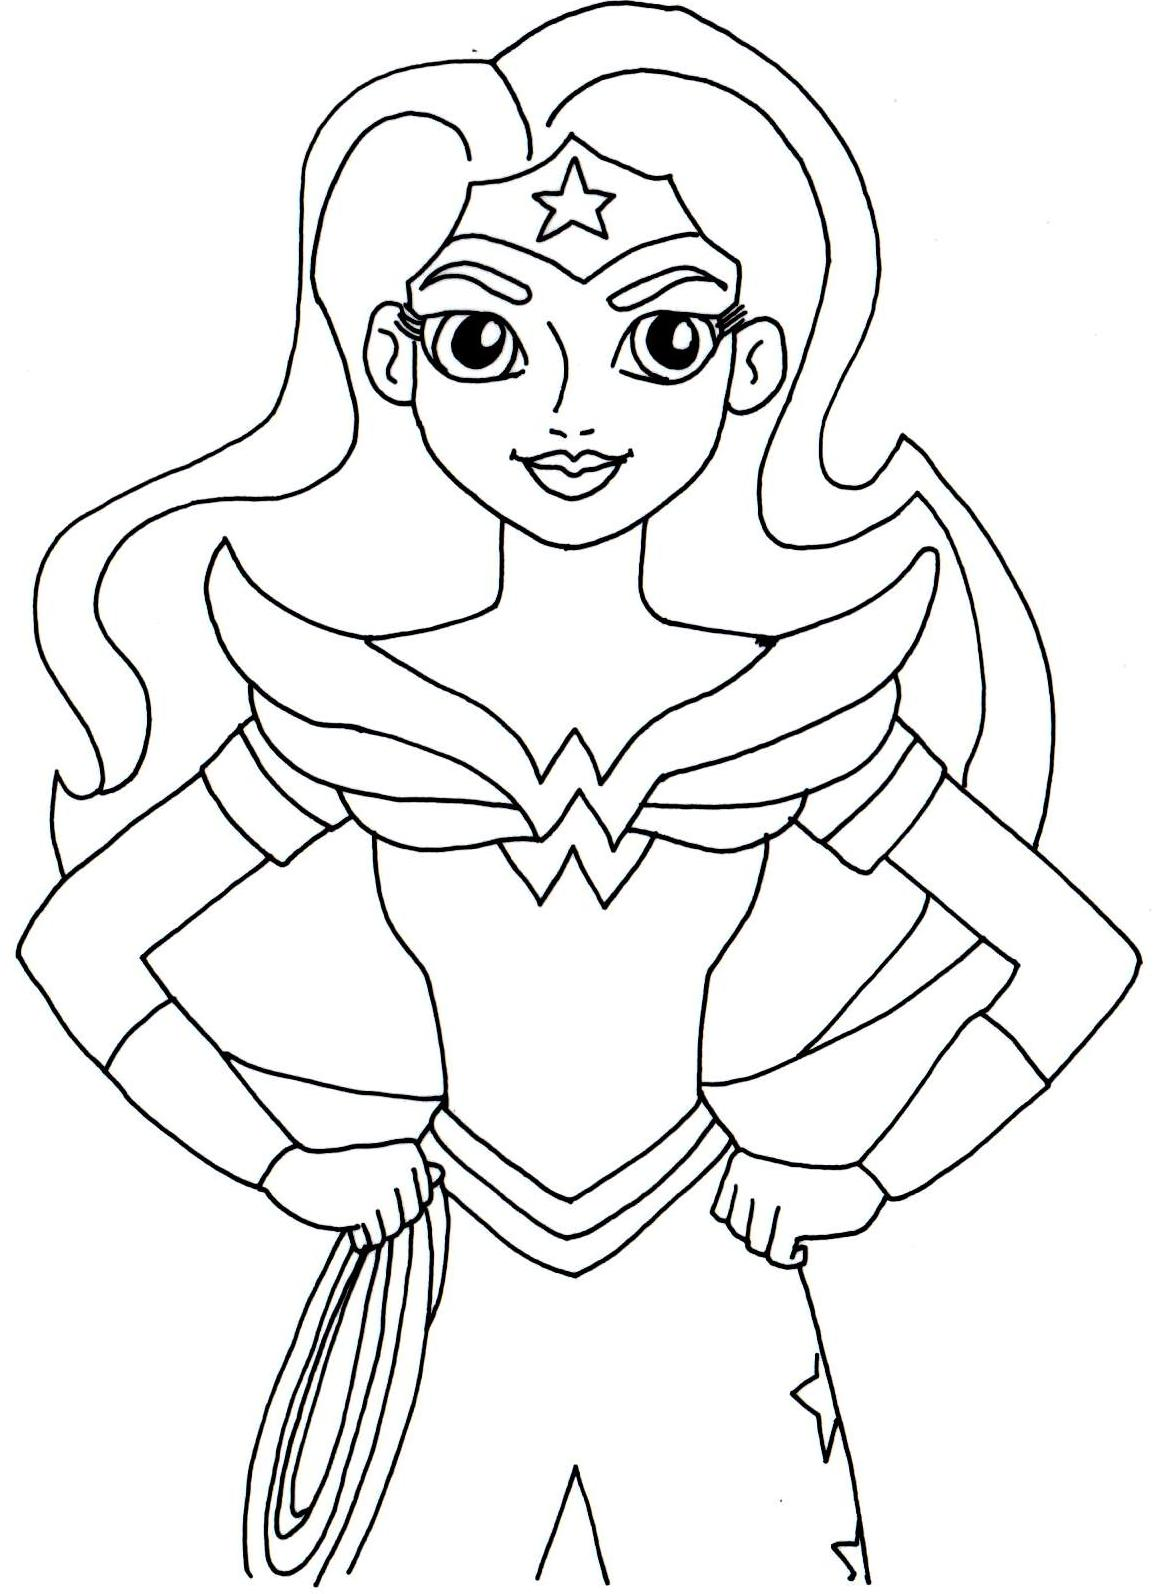 female superhero coloring pages - Tire.driveeasy.co